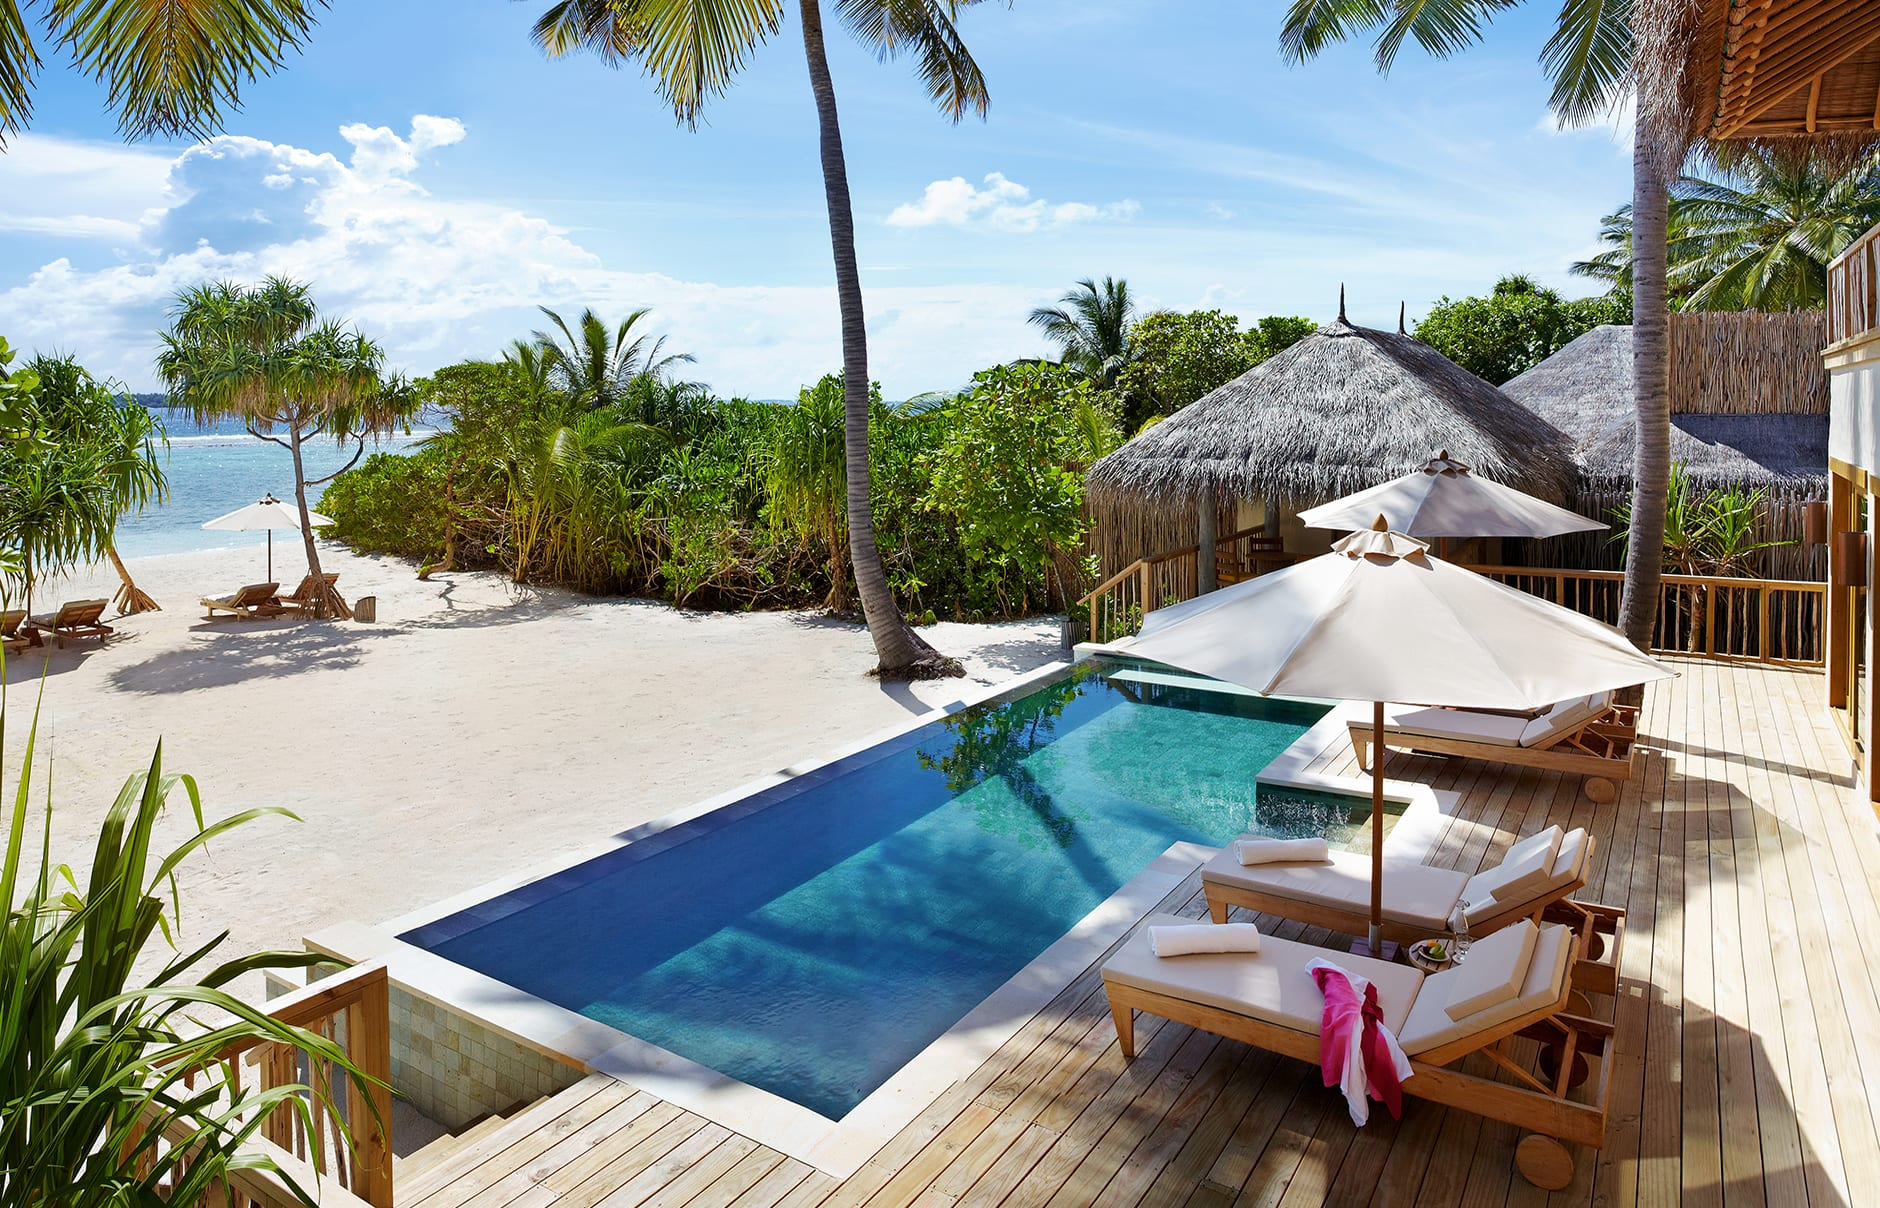 Luxury Pool Villas Maldives: Six Senses Laamu « Luxury Hotels TravelPlusStyle